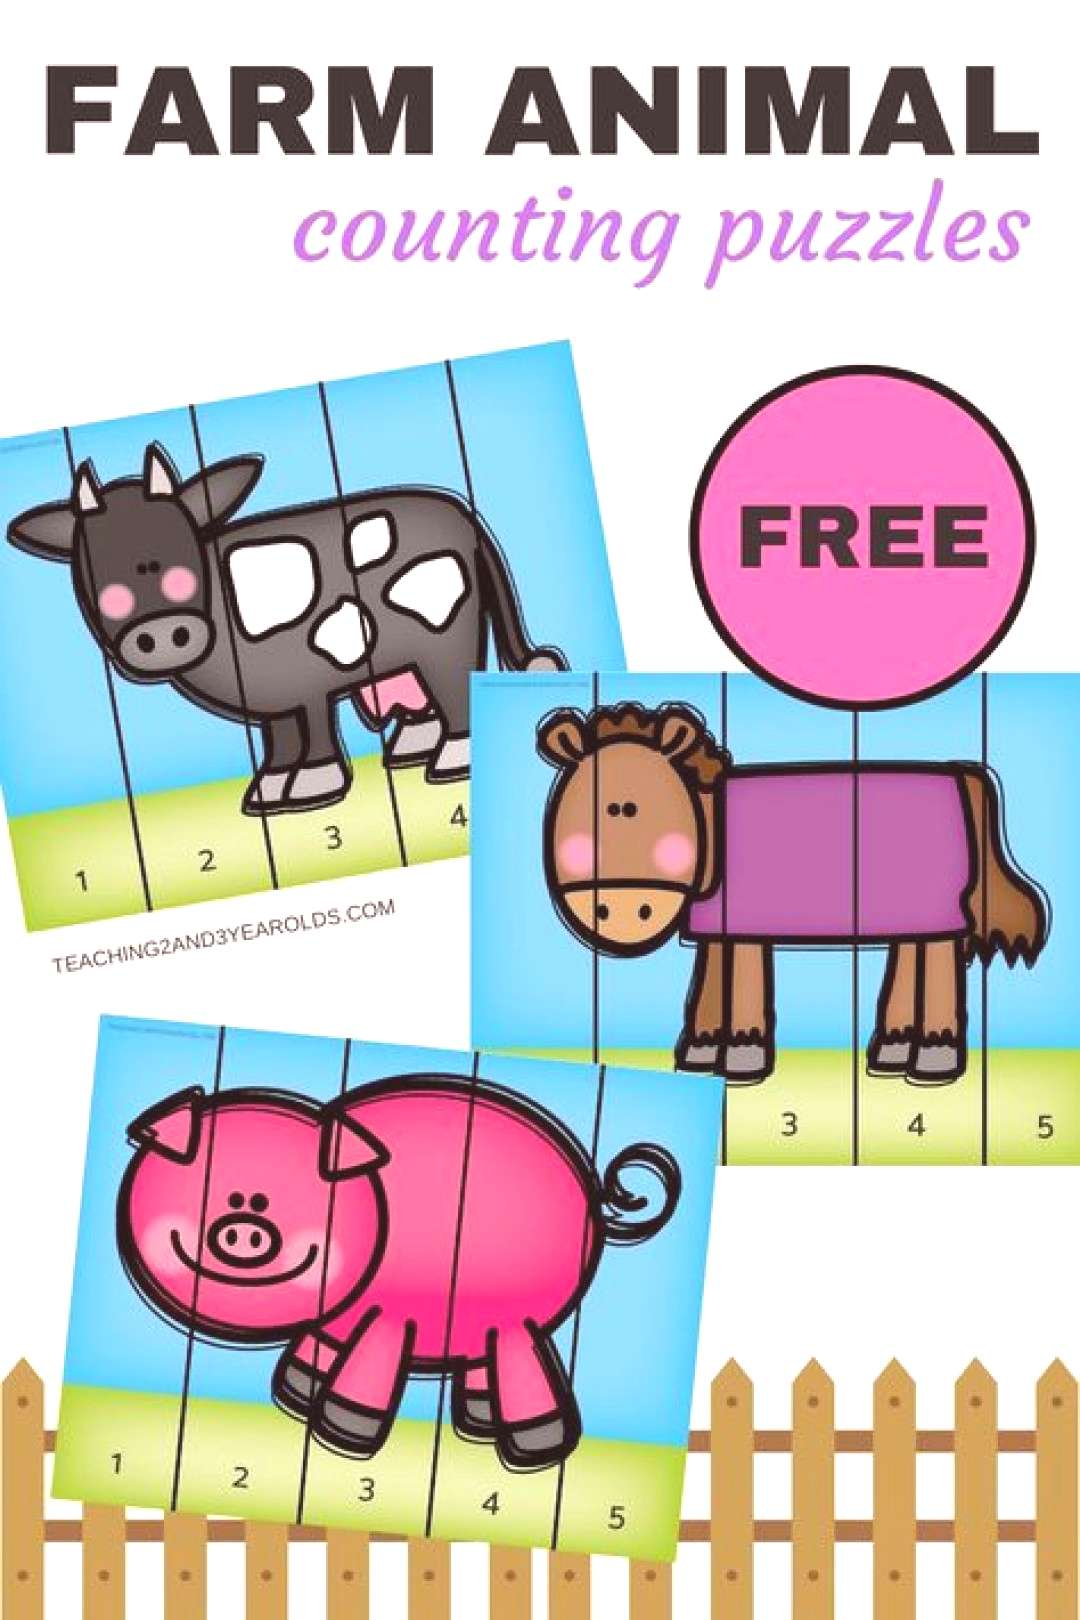 Free farm animal counting puzzles - cow, horse, pig - for toddlers and preschoolers. Perfect to go